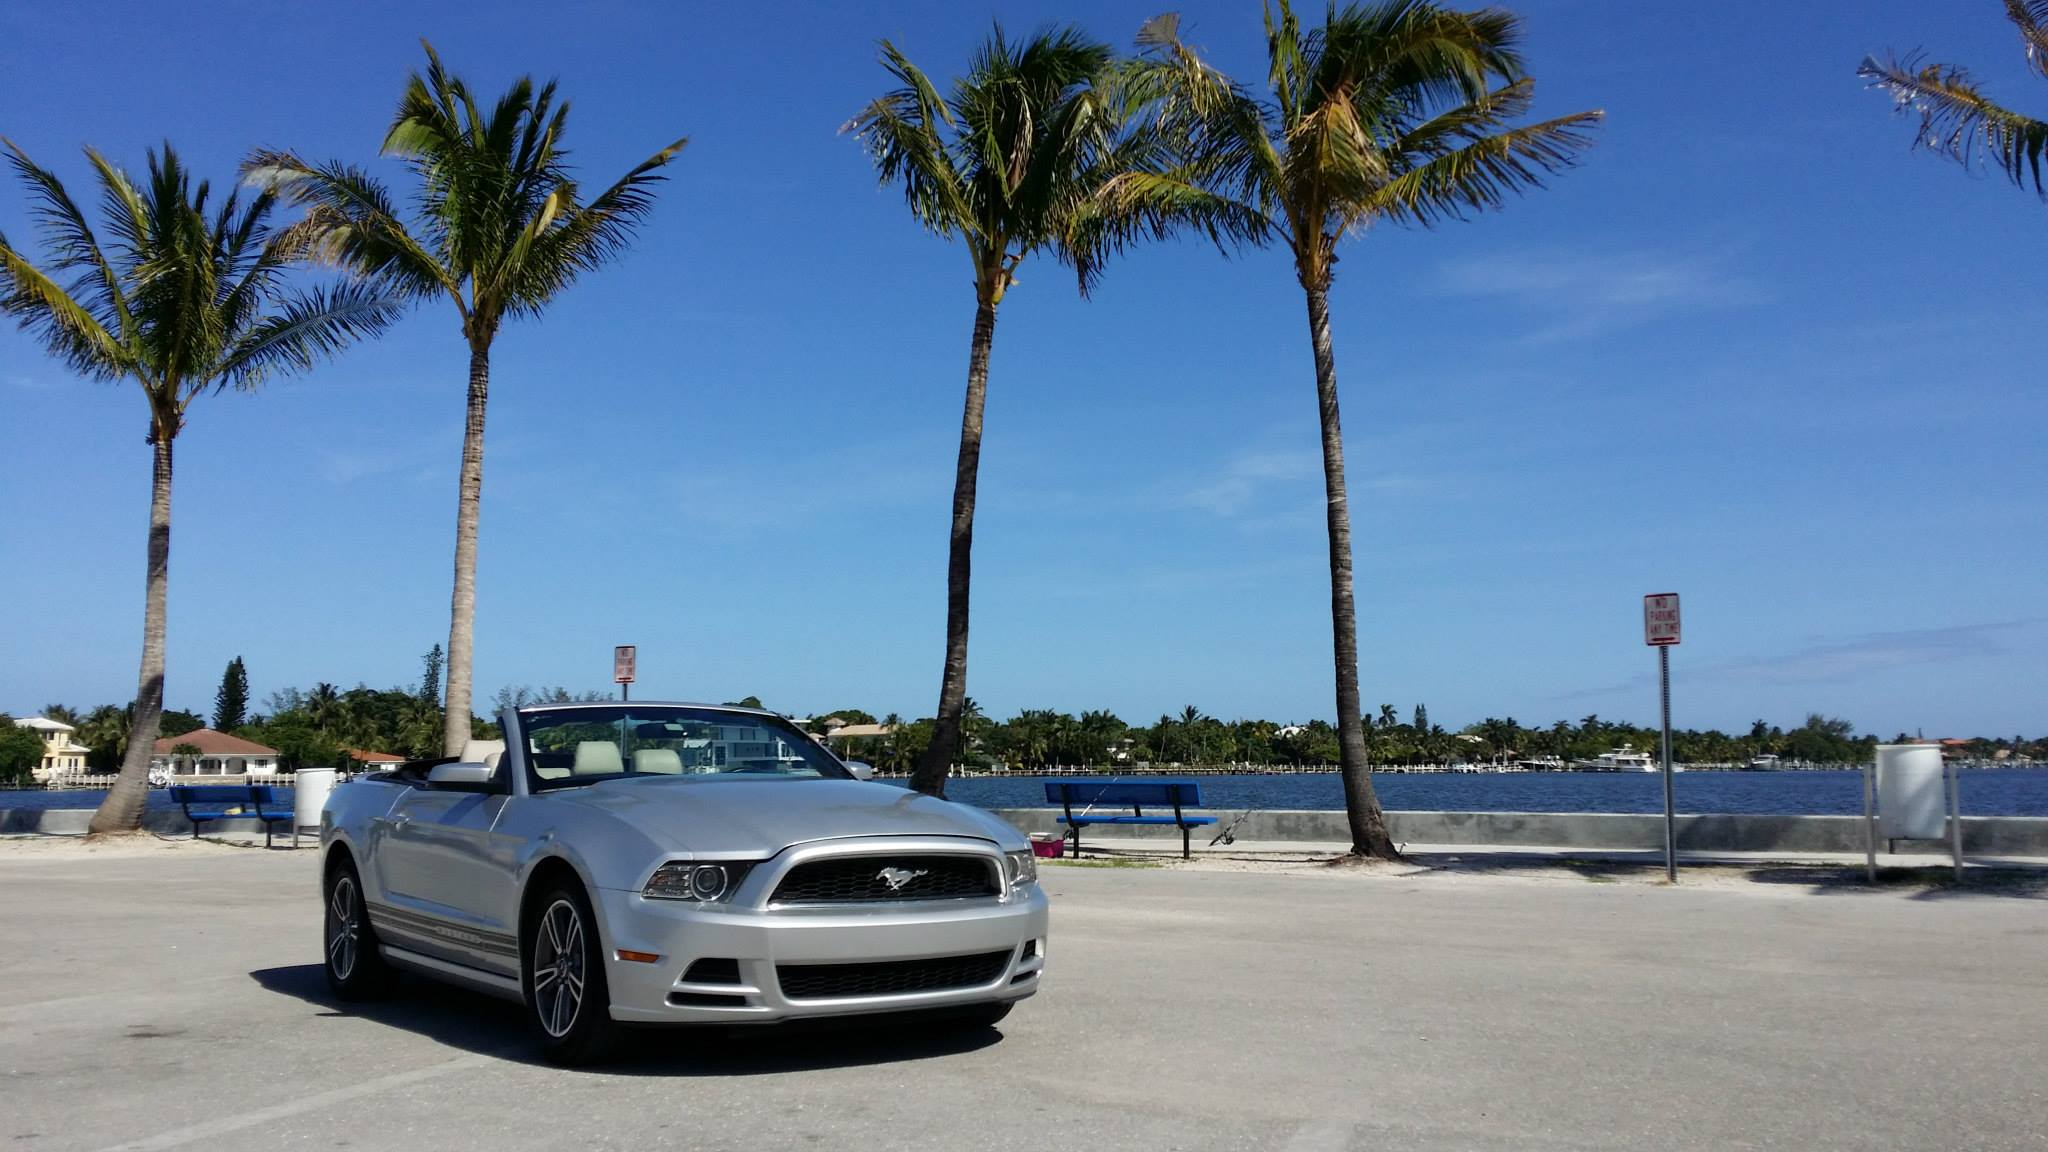 Ambassador Rent A Car - Lake Worth Organization